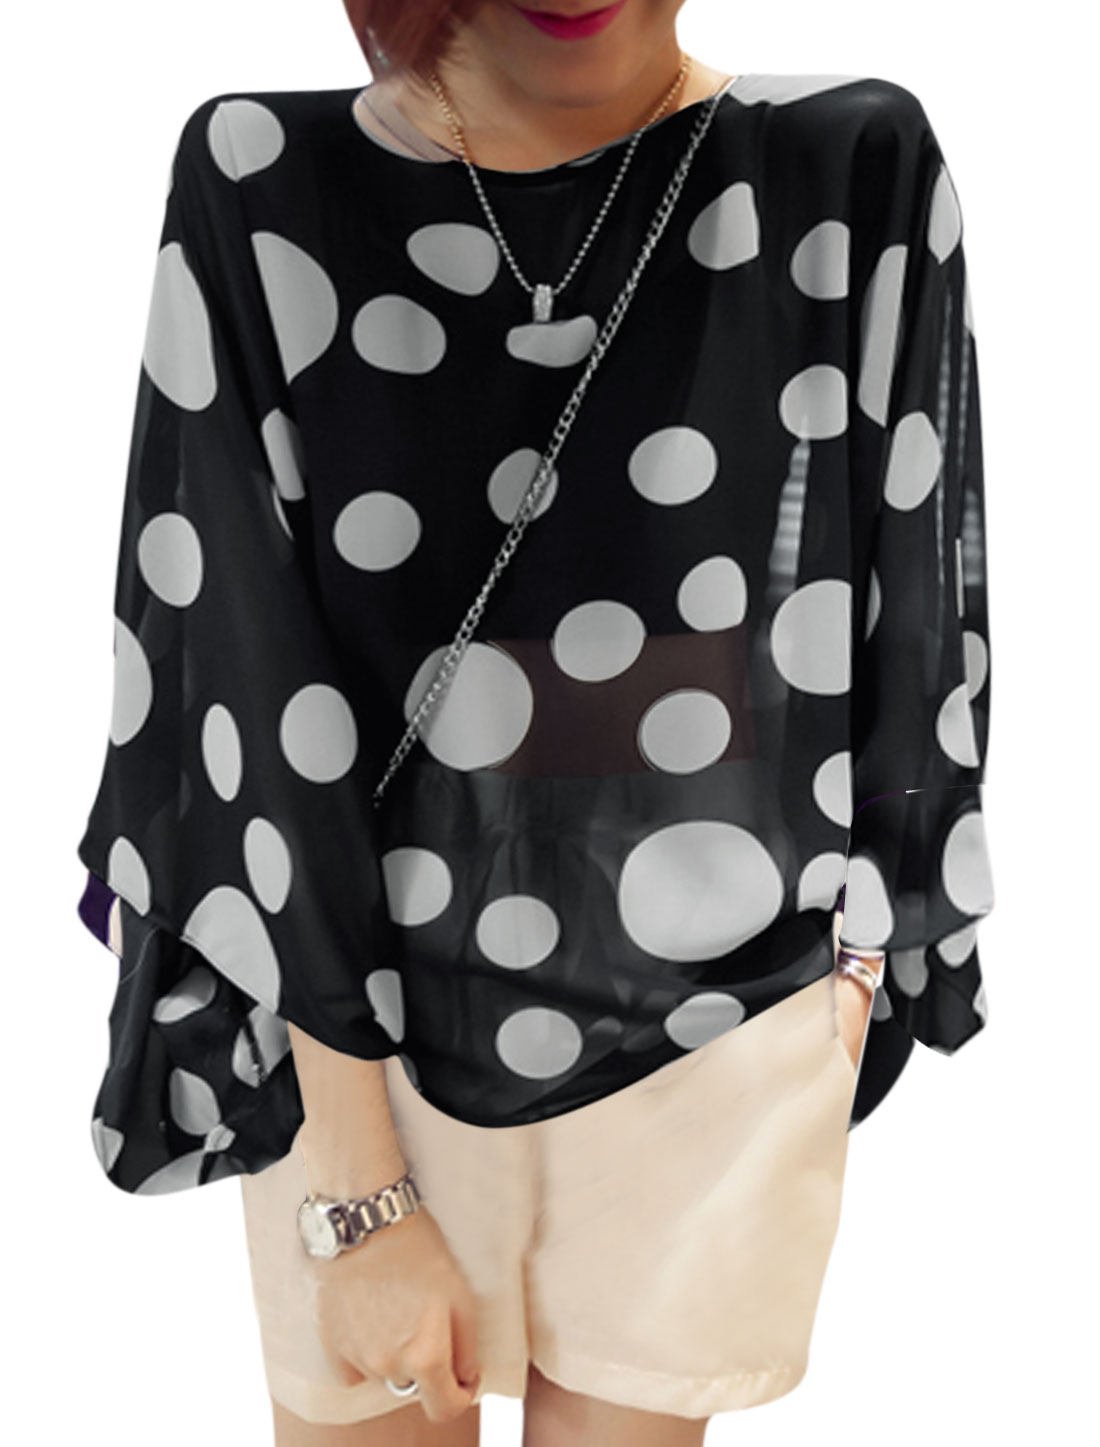 Ladies Dots Pattern Round Neck Batwing Sleeve Black Chiffon Blouse XS